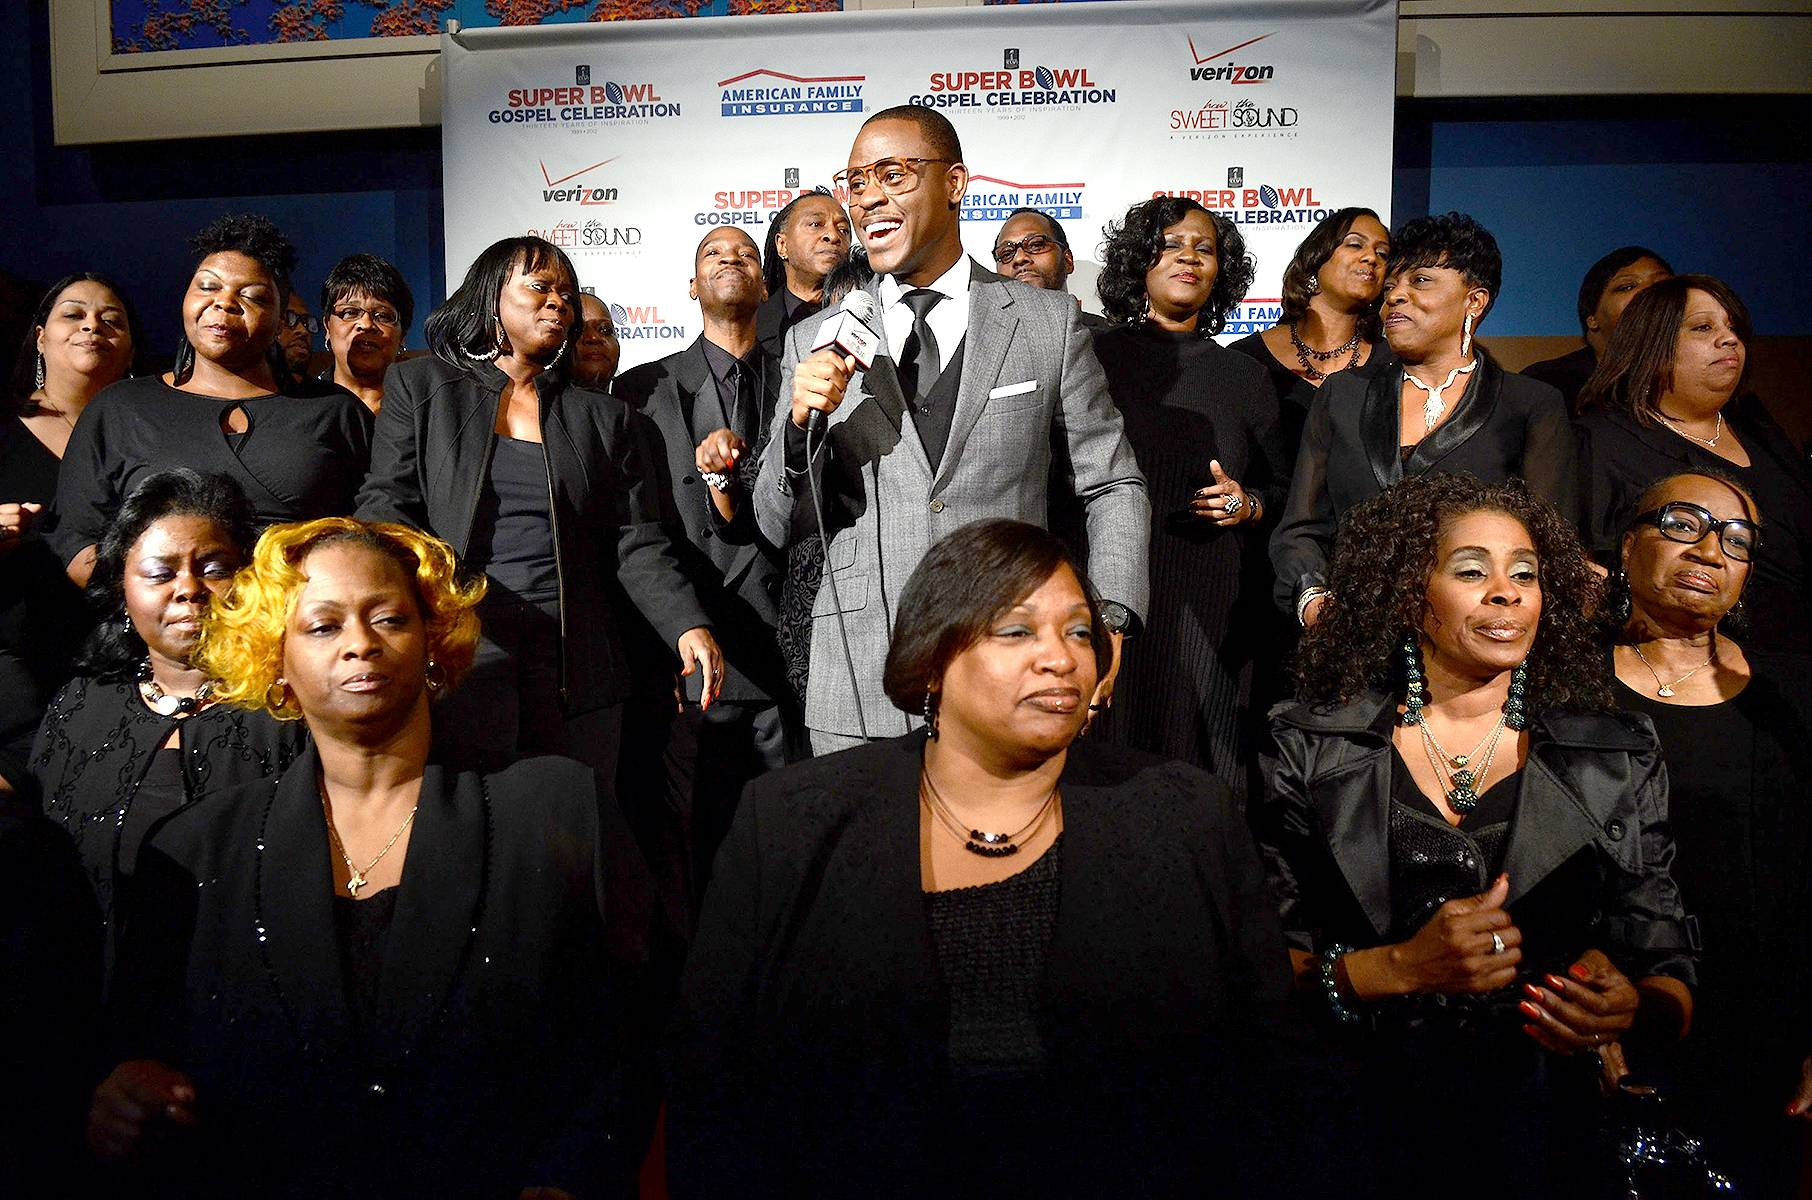 Fellowship - Pastor Charles Jenkins and the Fellowship pose for a picture at Super Bowl Gospel Celebration 2012 at Clowes Memorial Hall of Butler University in Indianapolis. (Photo: Daniel Boczarski/Getty Images for Super Bowl)